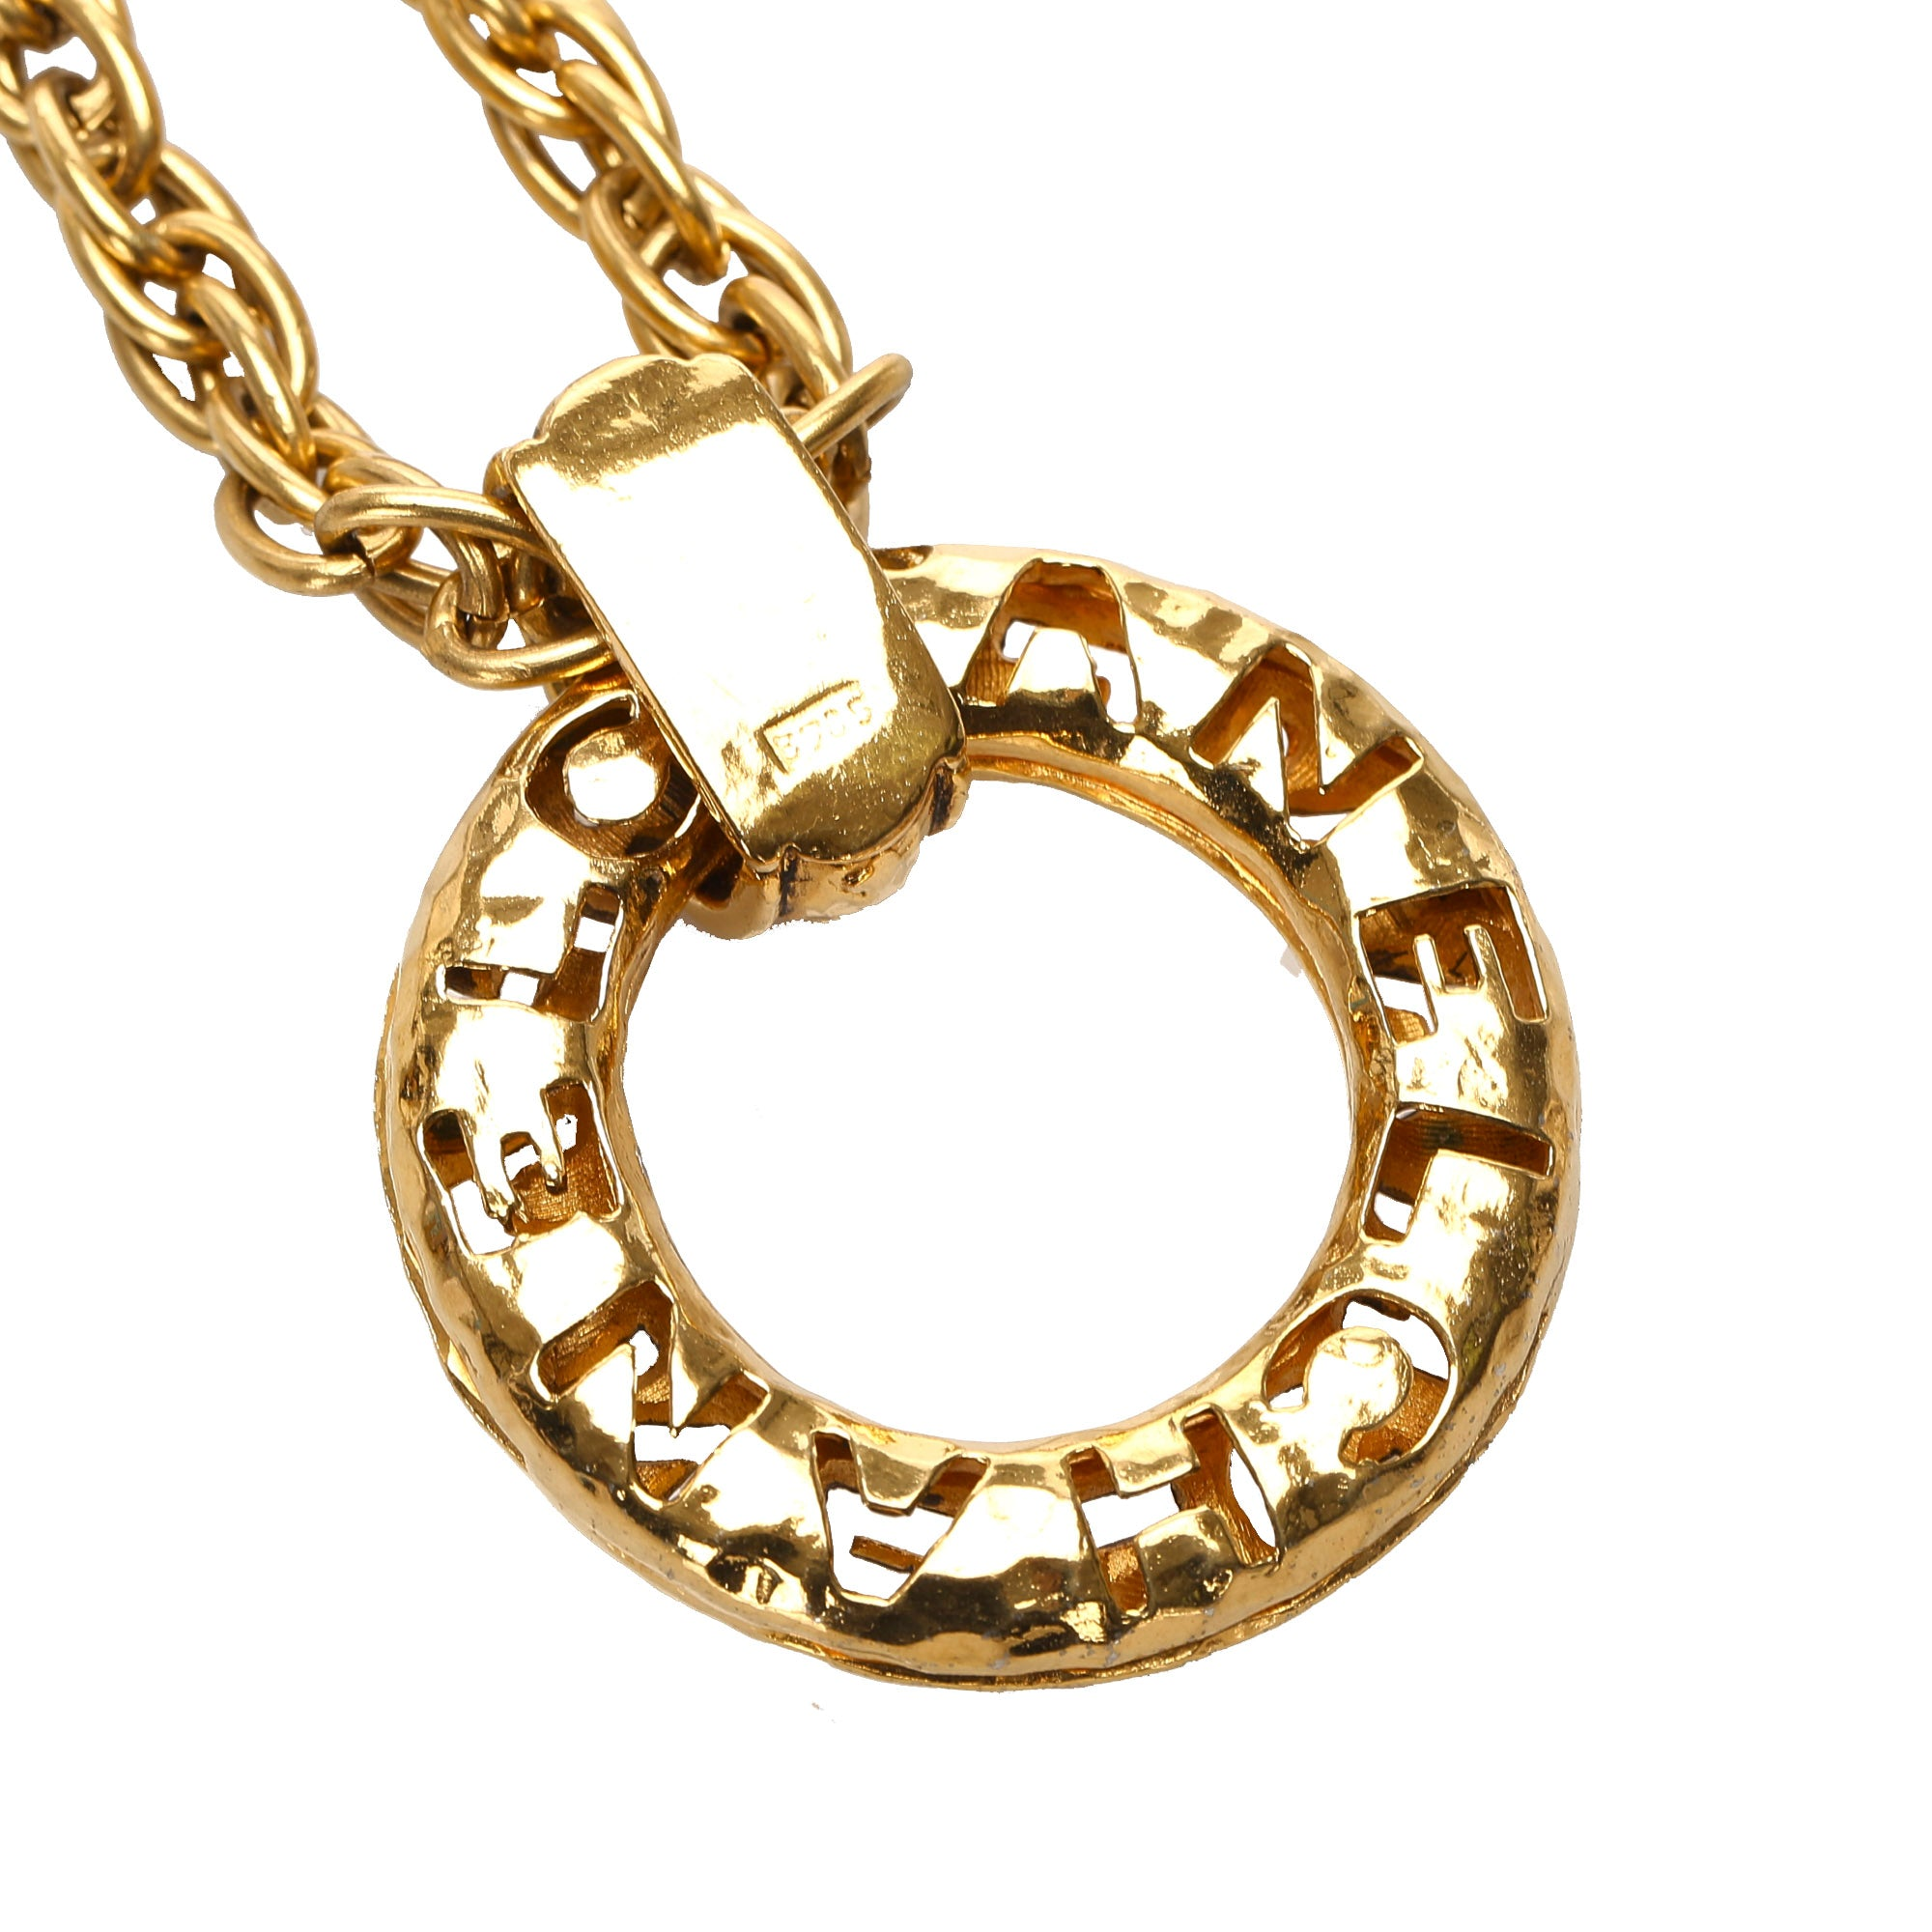 Chanel Gold Ring Pendant Necklace